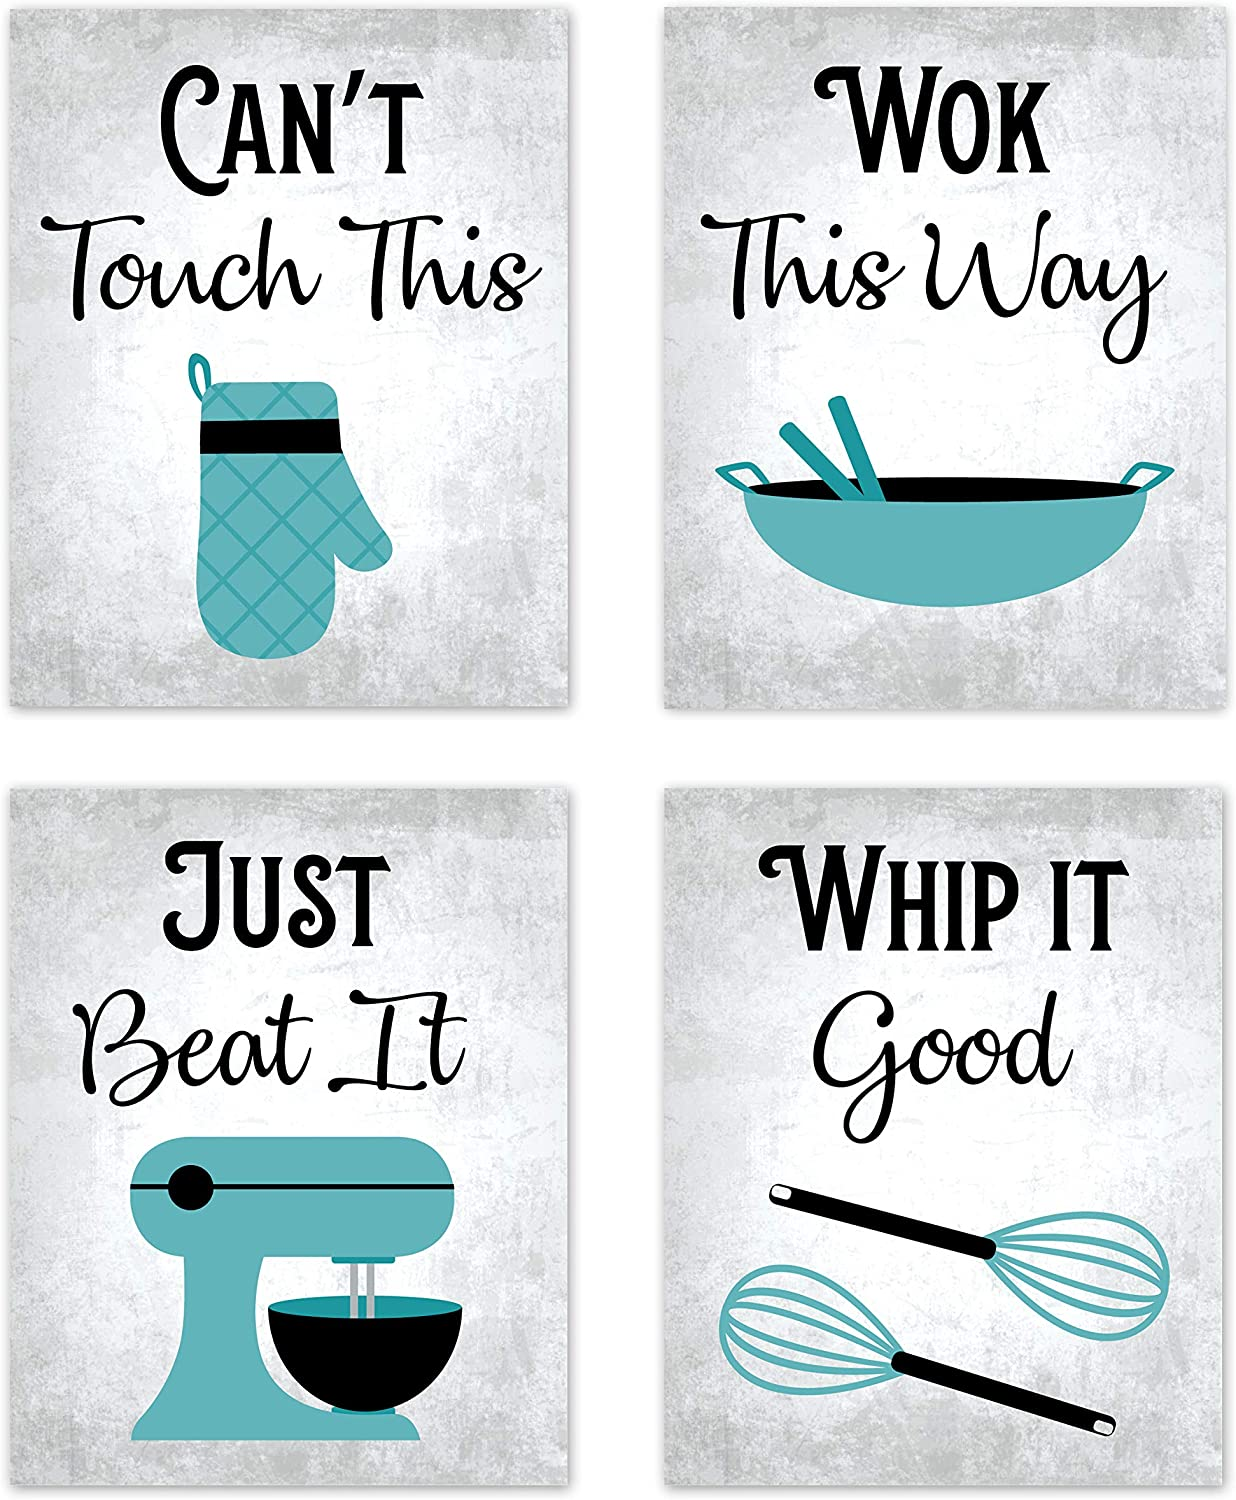 "80s Music Songs Retro Vintage Inspirational Kitchen Wall Art Dining Room Cafe and Restaurant Decor Turquoise Teal Blue Black Gray and White Baking Prints Posters Signs Sets Retro Home Decorations Funny Sayings Quotes Unframed (Set of 4) 8""x10"""